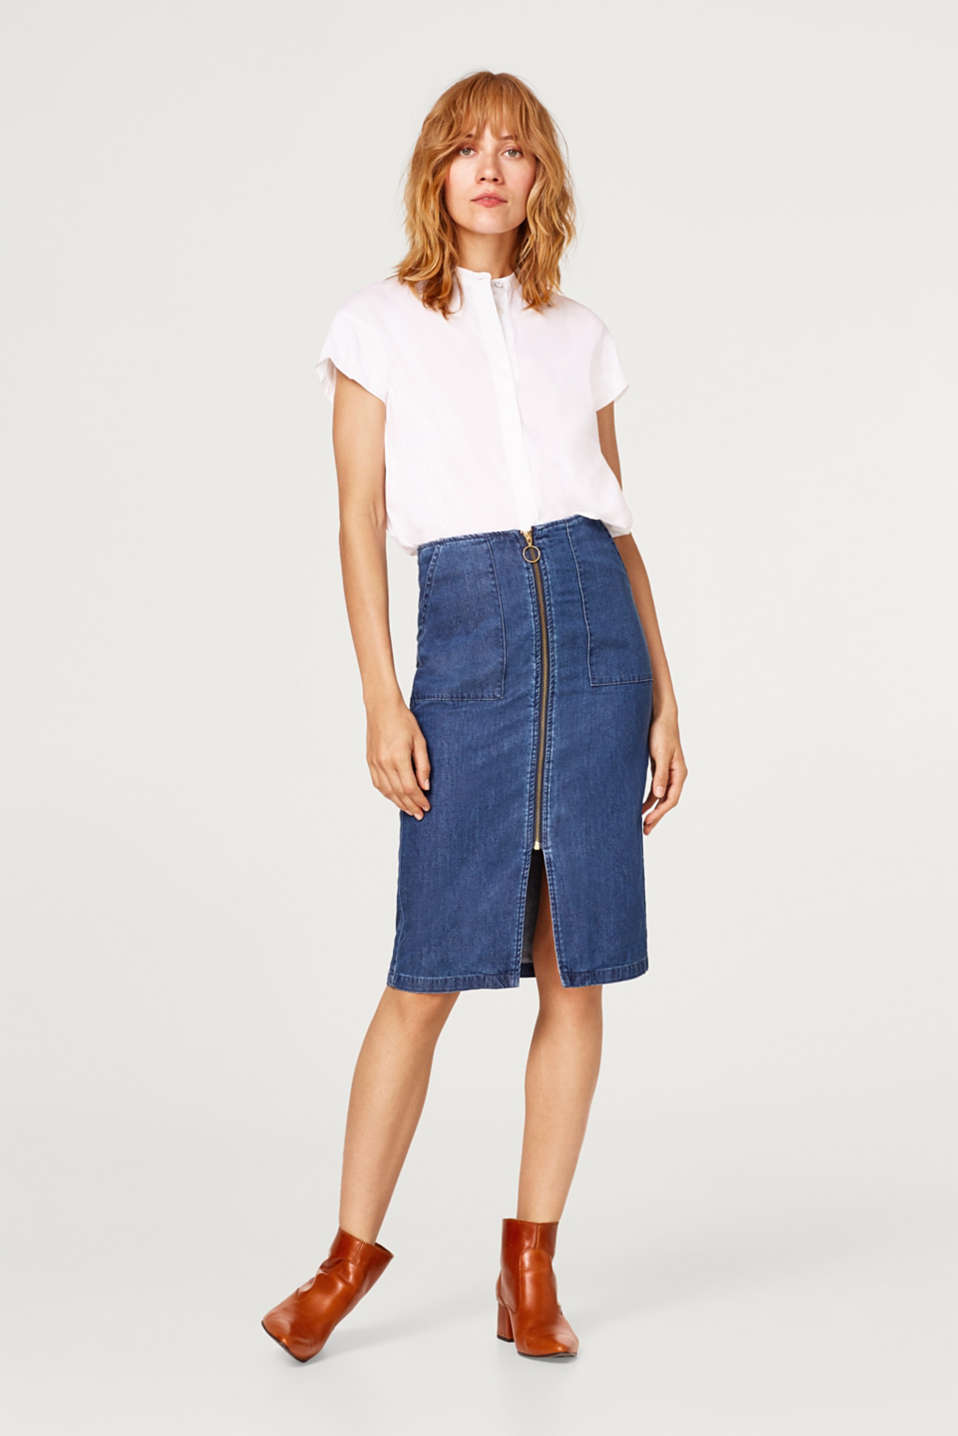 edc - Denim skirt with a zip, 100% cotton